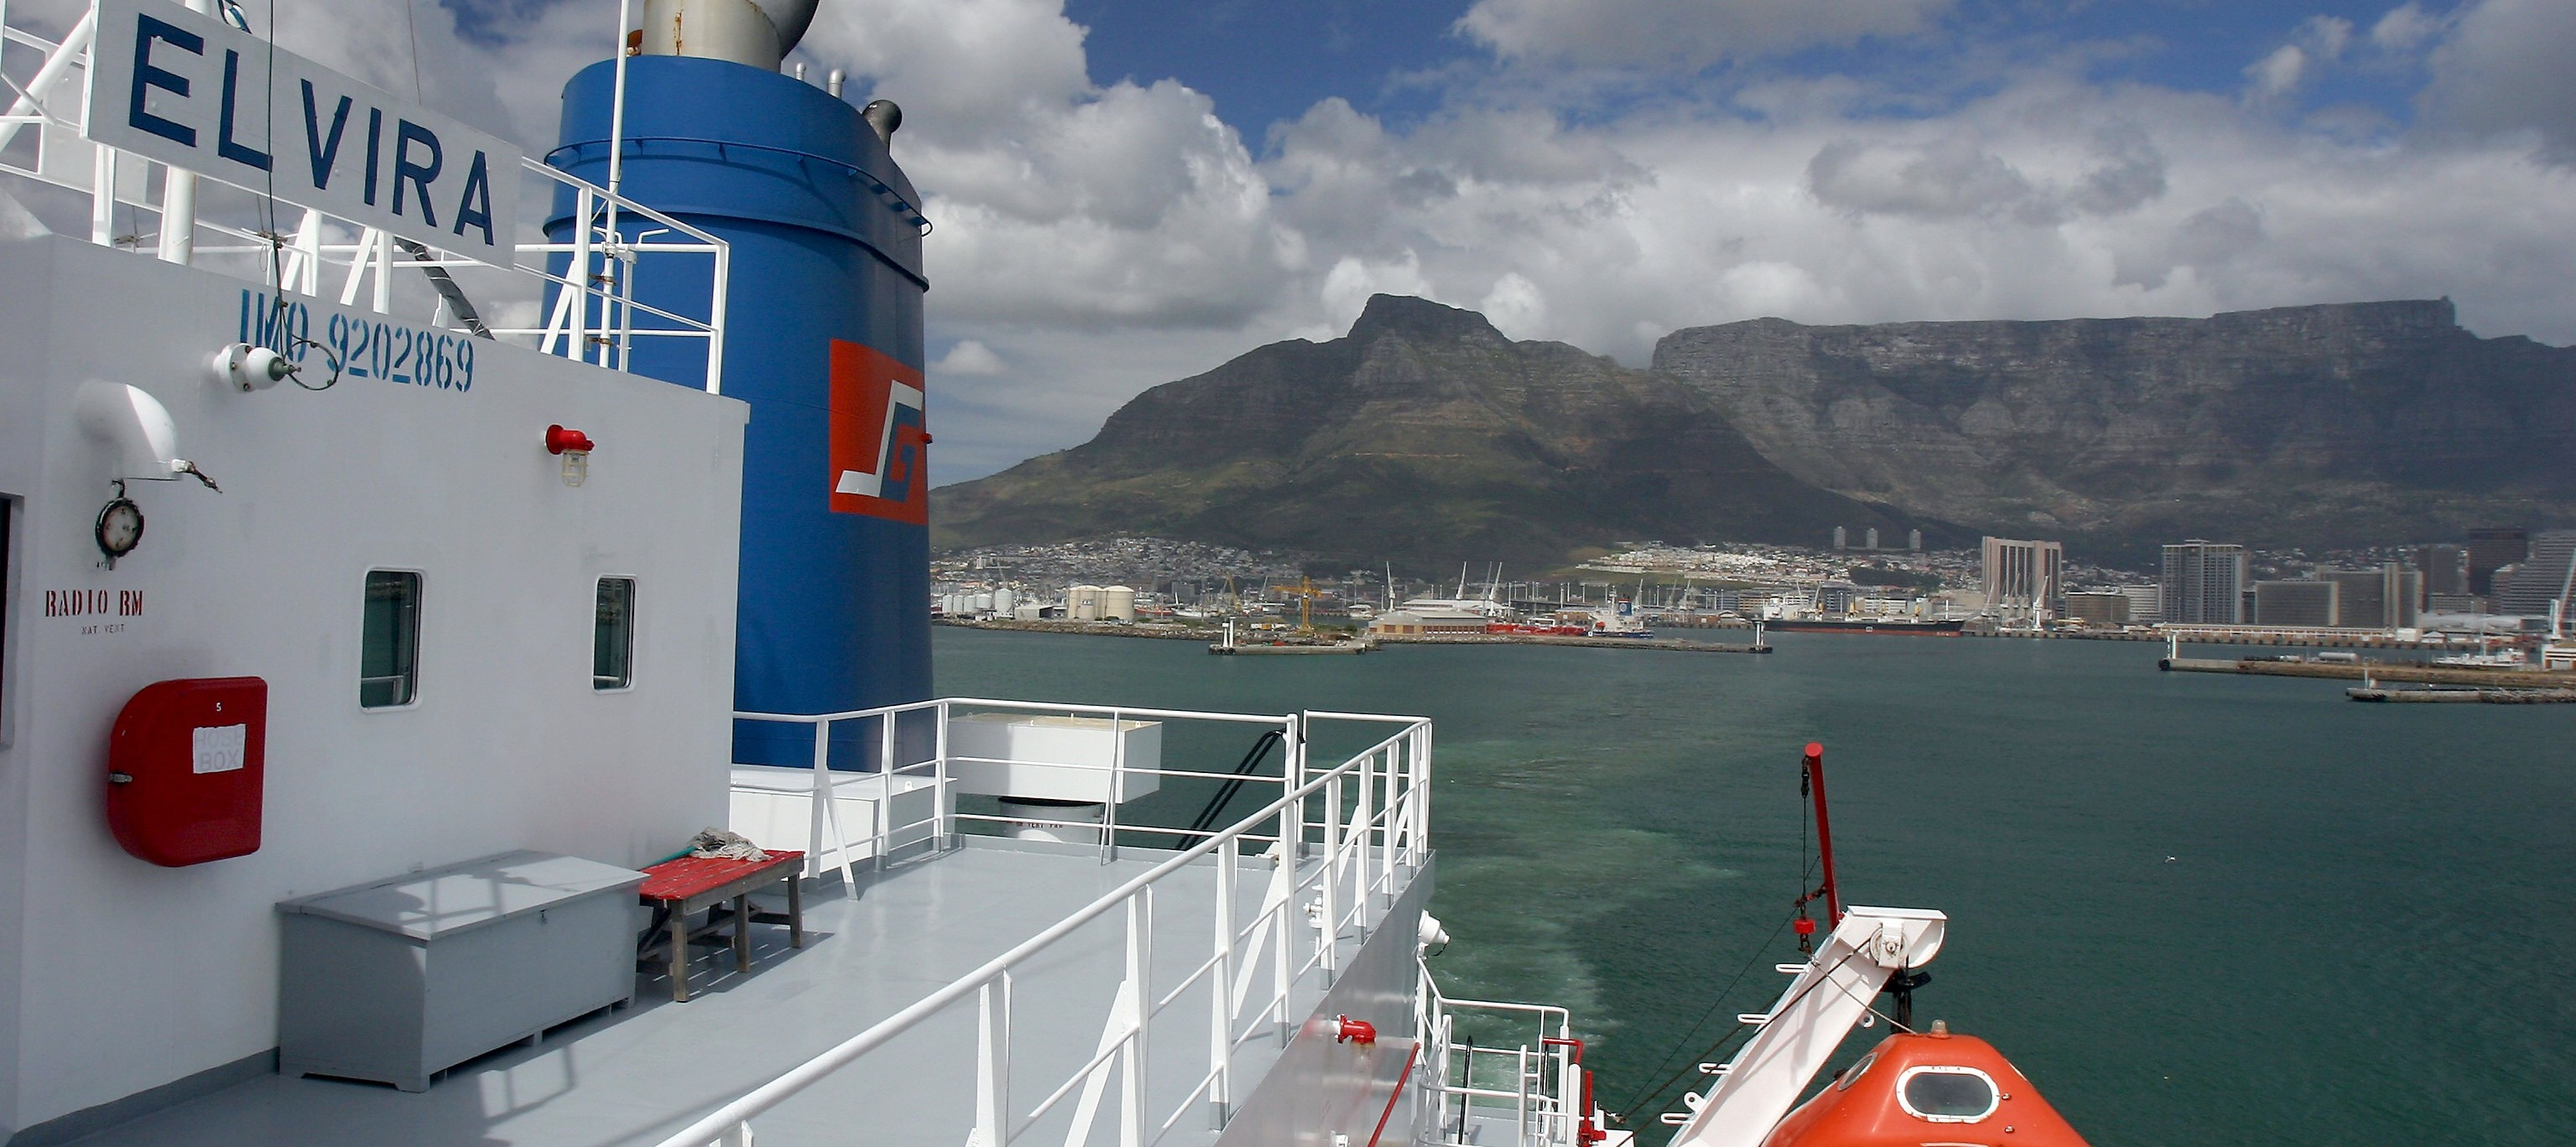 Elvira-sailing-Cape-Town